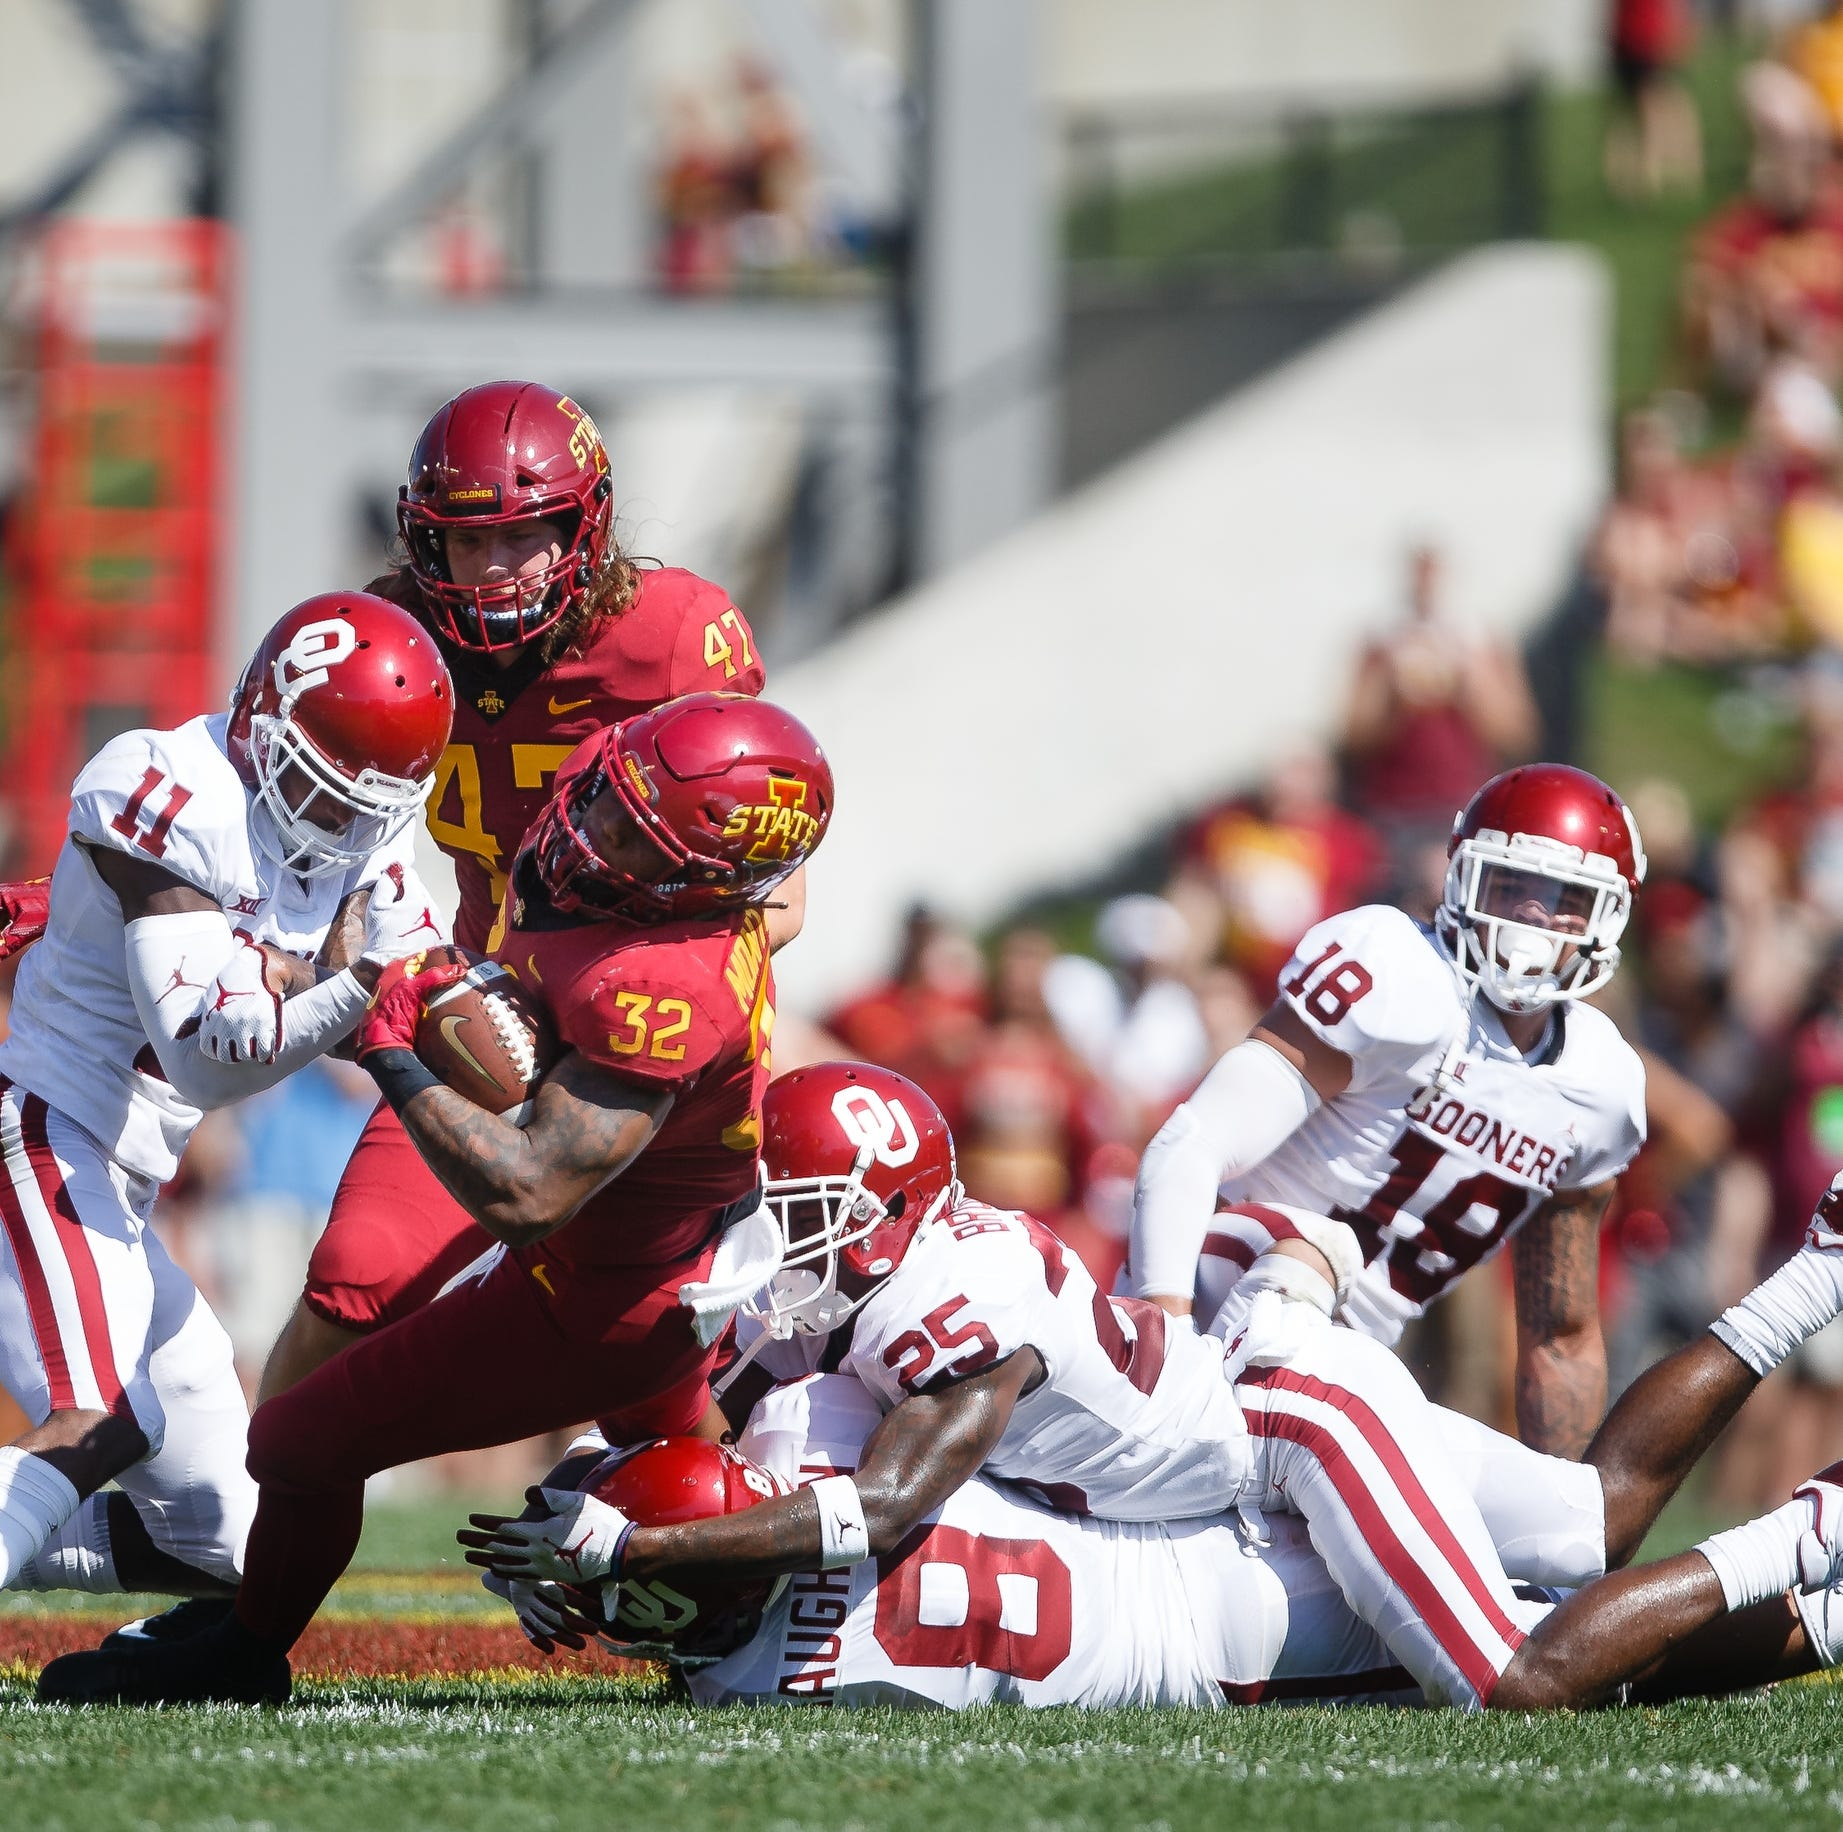 Peterson: Iowa State a 3-TD favorite against Akron? Plus, trash that 'Wildcat' play.